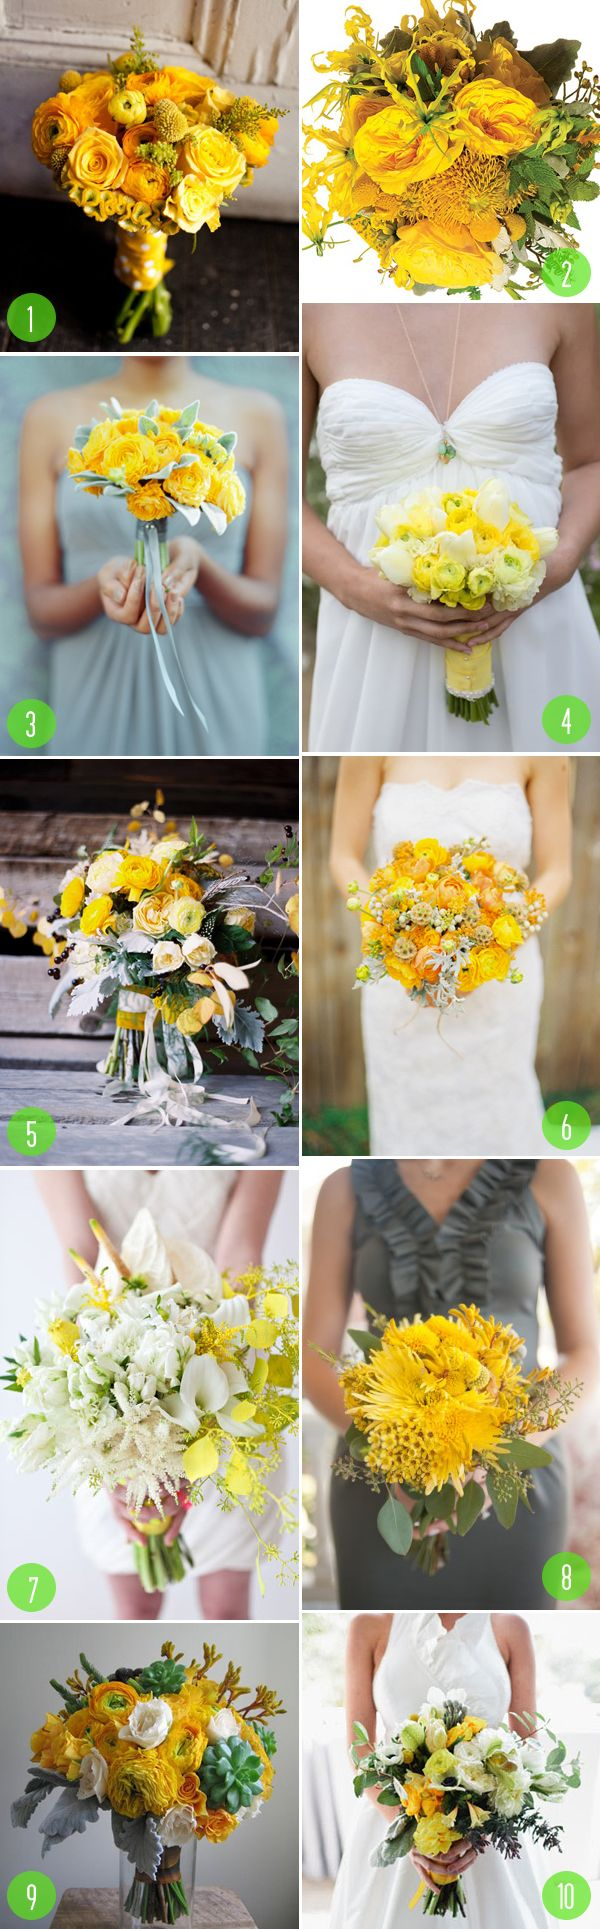 top 10: modern yellow bouquets